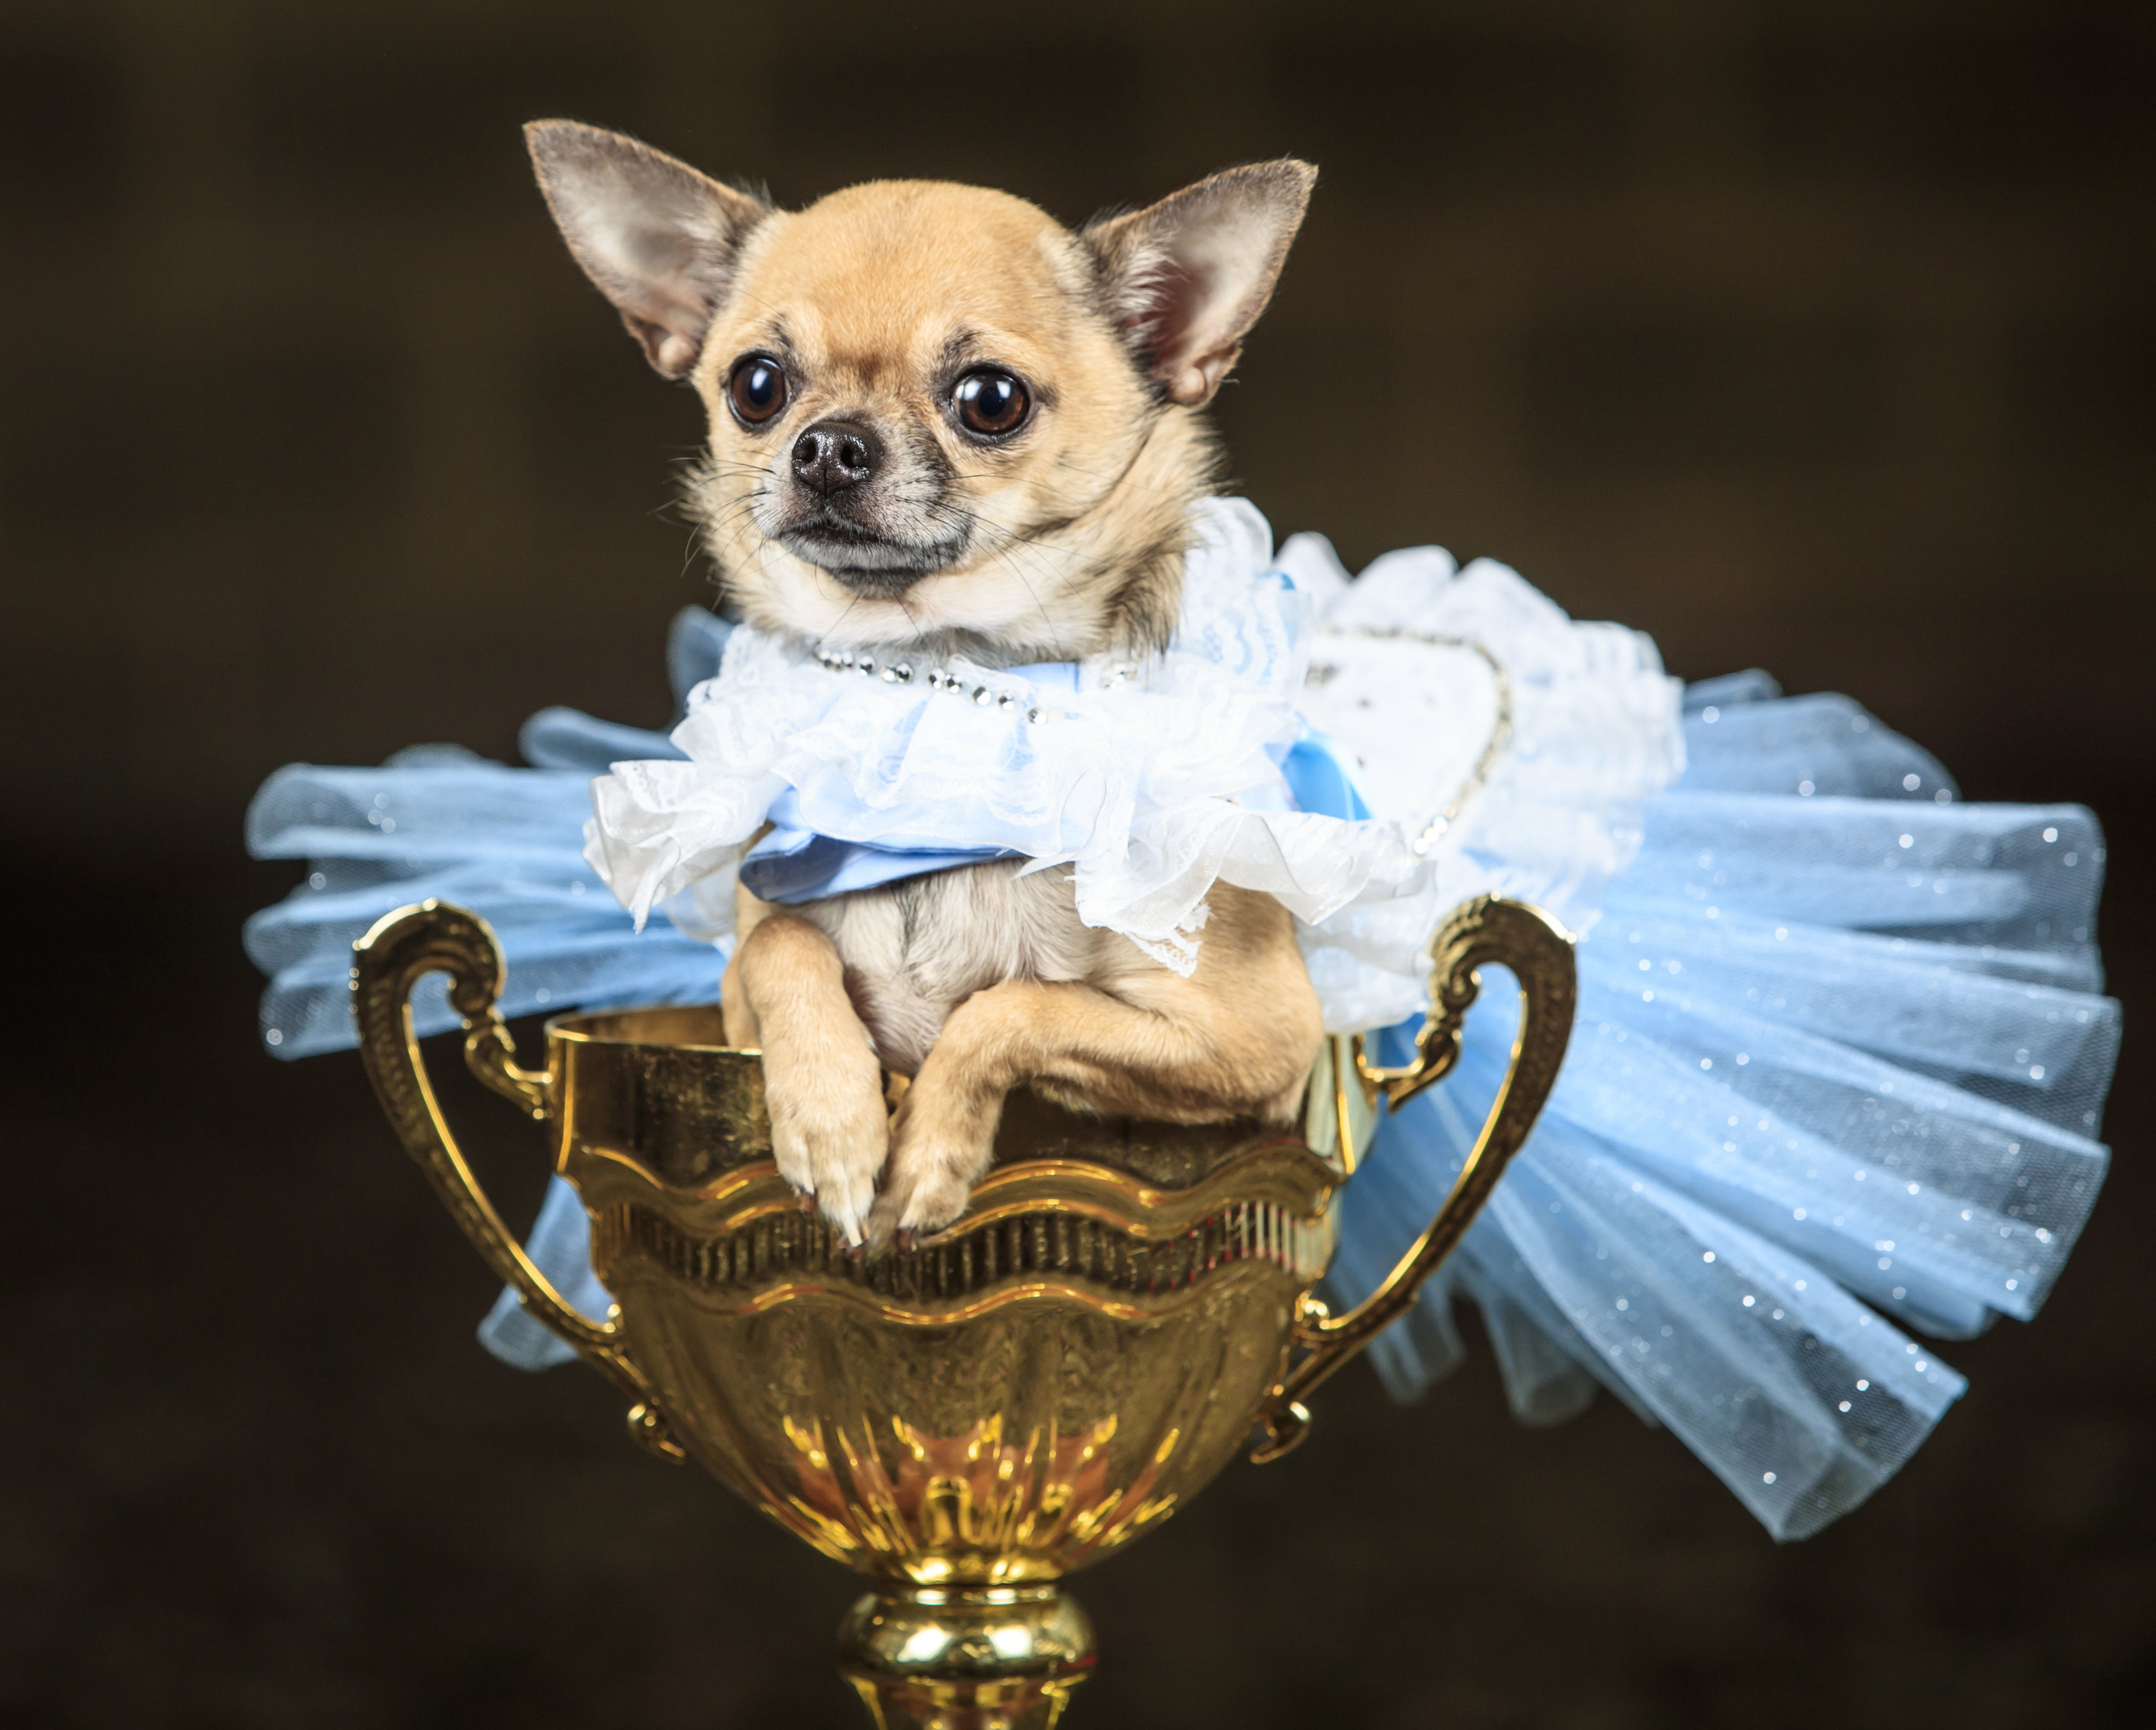 Dolly the Chihuahua dog dressed as Alice in Wonderland is photographed during an Alice in Wonderland and Charlie and the Chocolate Factory themed Furbabies Dog Pageant at Jodhpurs Riding School in Tockwith, North Yorkshire, Sunday Sept. 6, 2020. (Danny Lawson/PA via AP)